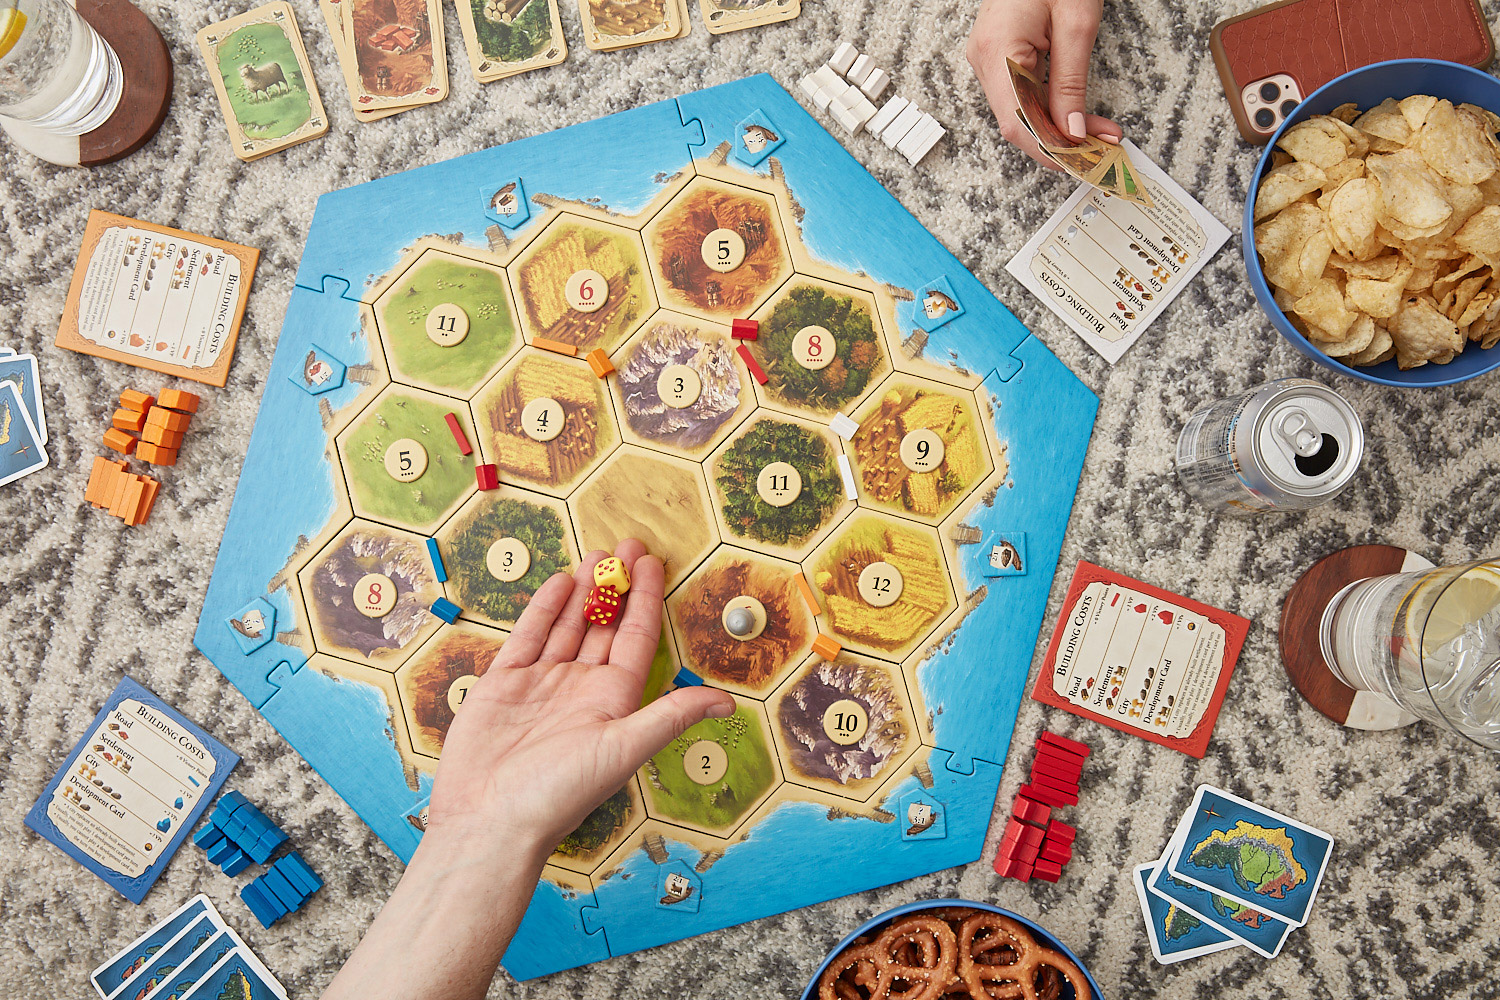 how-to-win-at-settlers-of-catan-board-game-412417_hero_3198